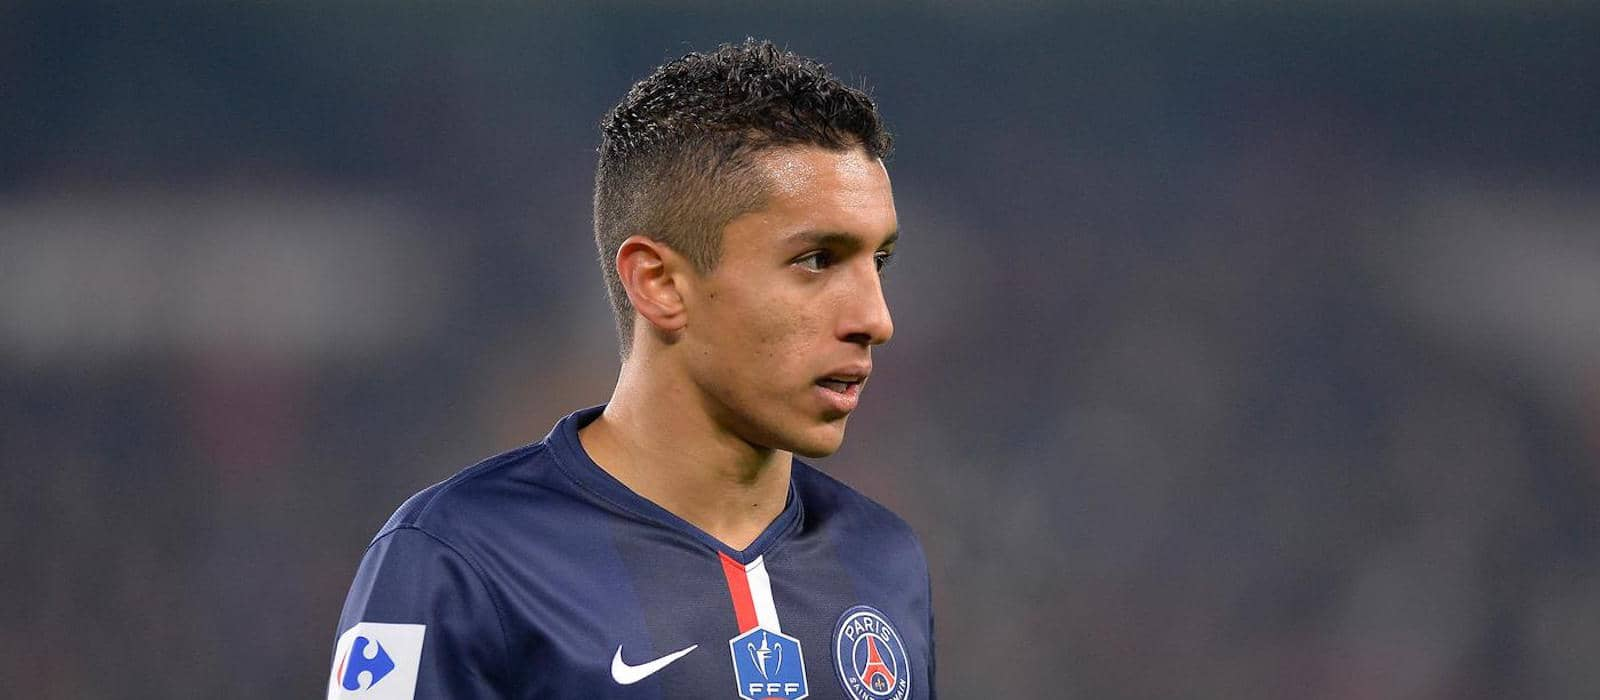 Marquinhos' agent makes contact with Manchester United: report